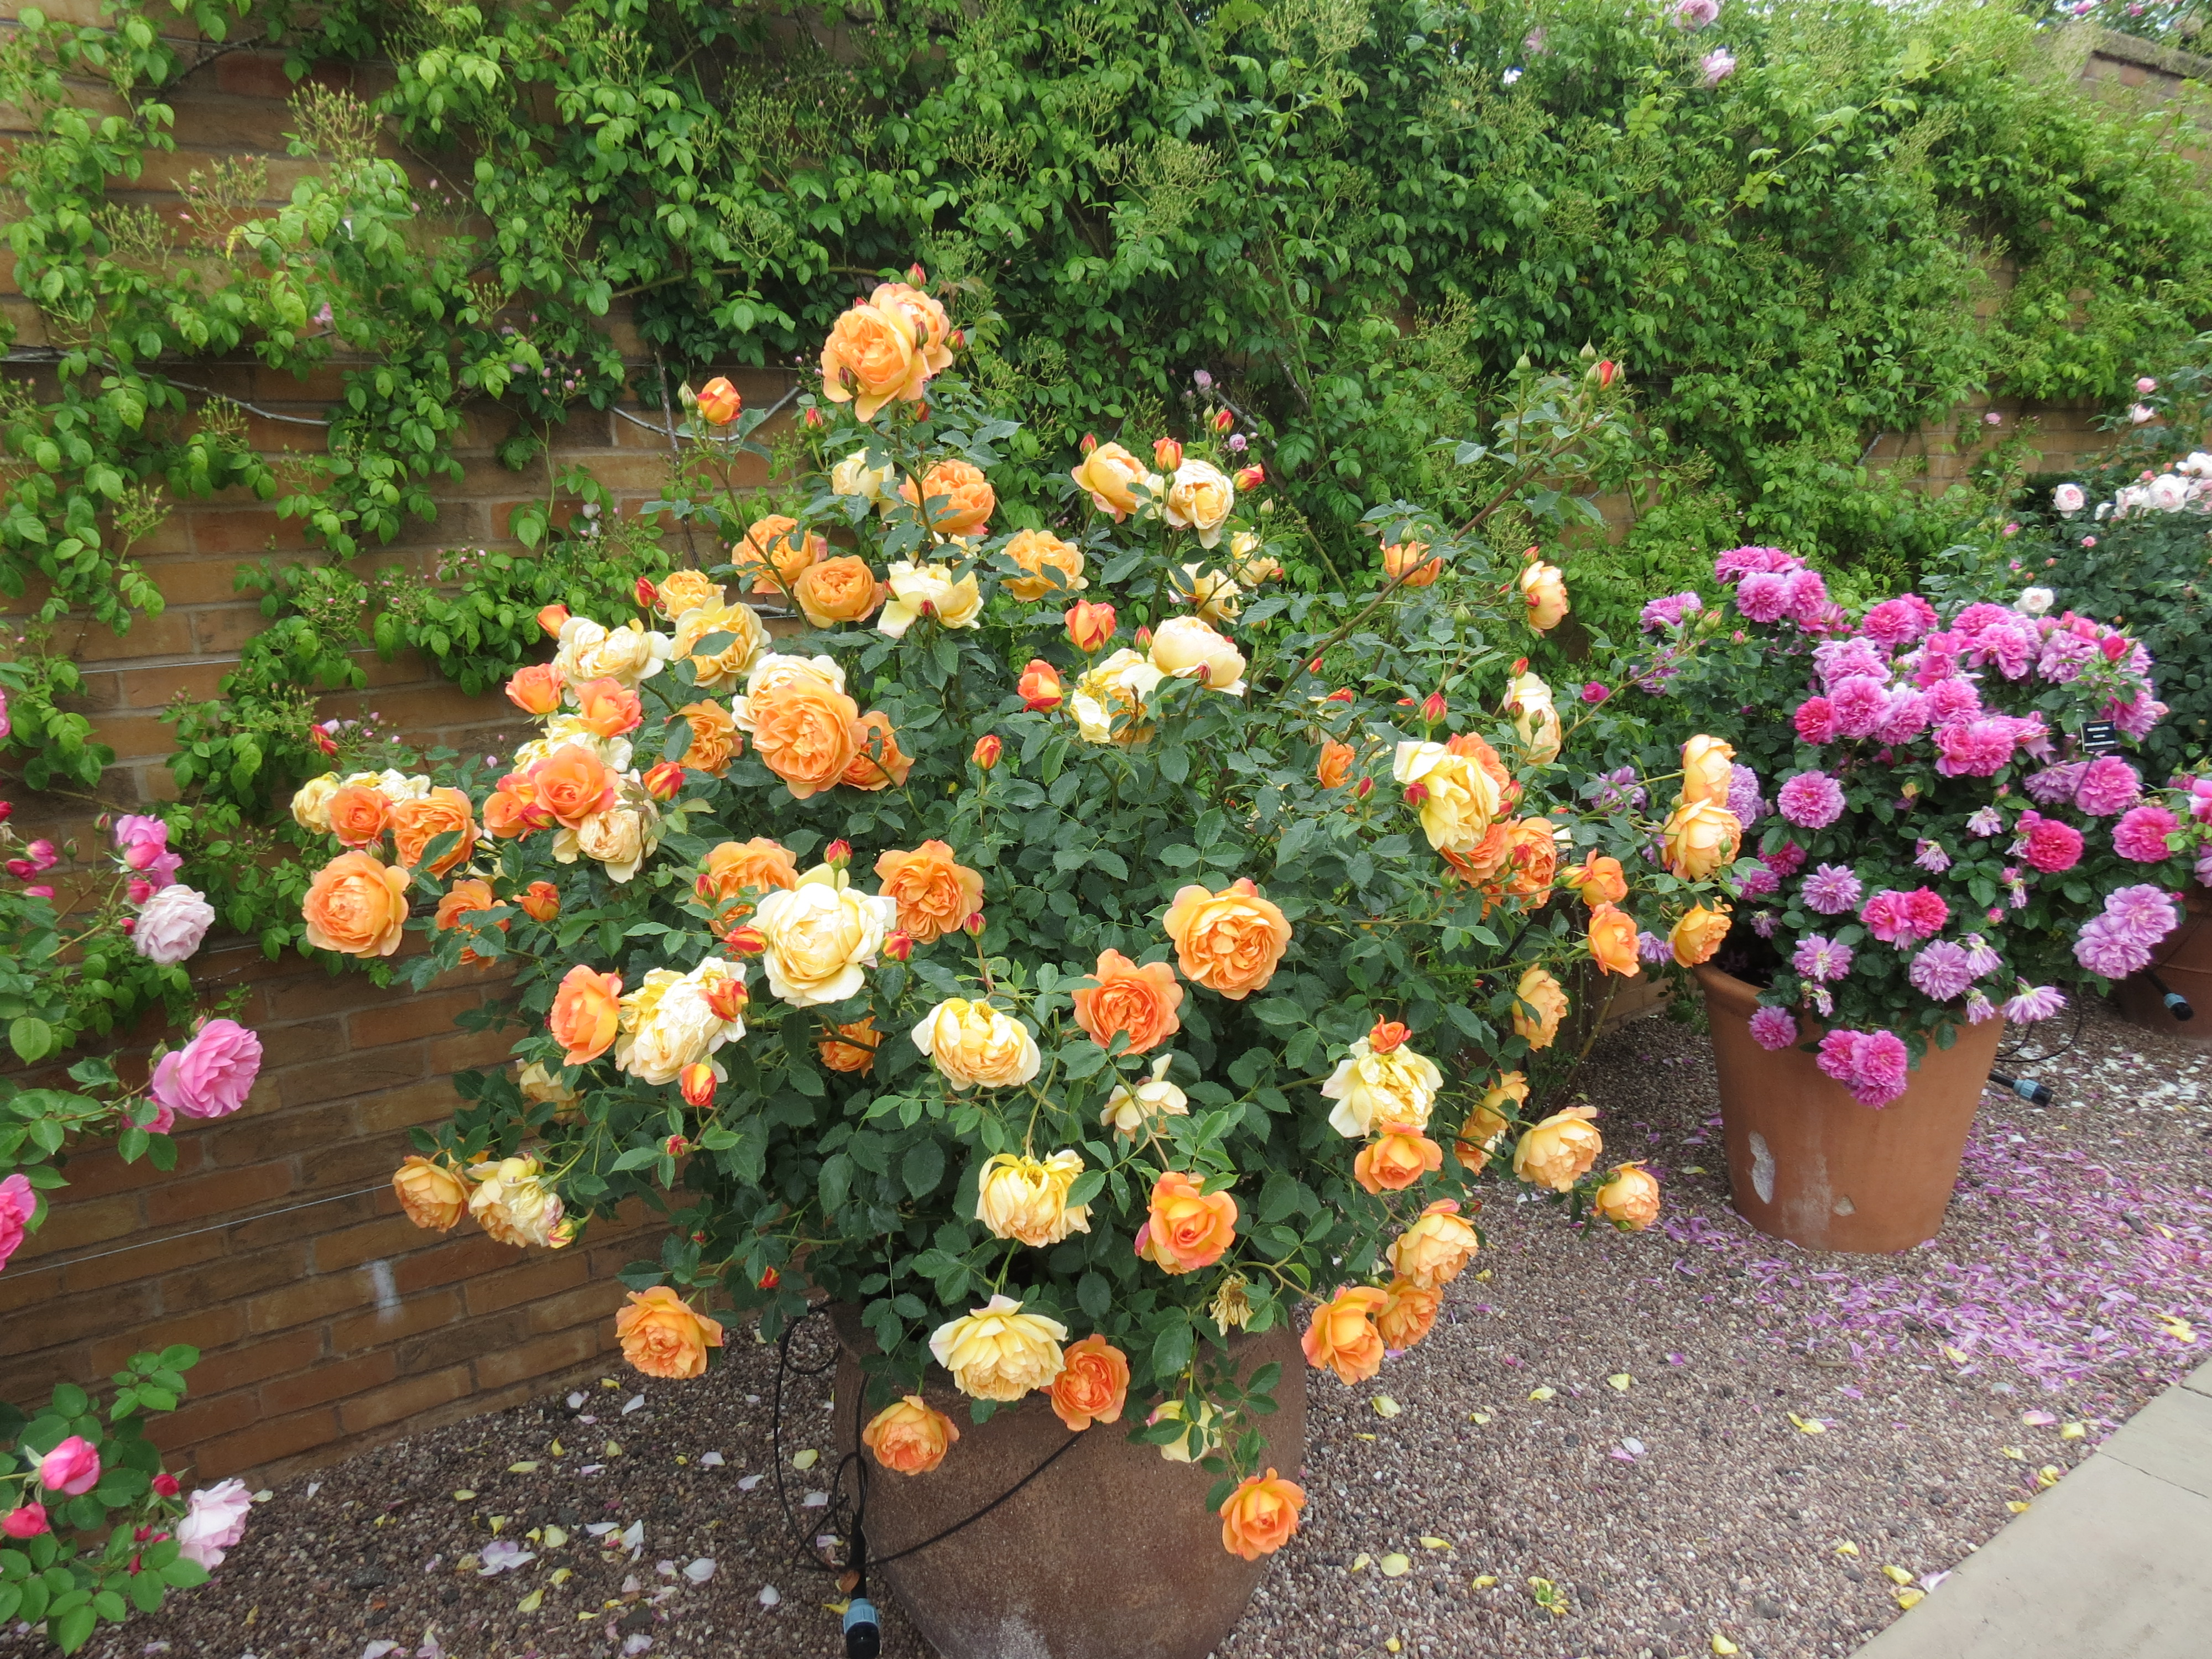 Growing Roses In Pots Grownups New